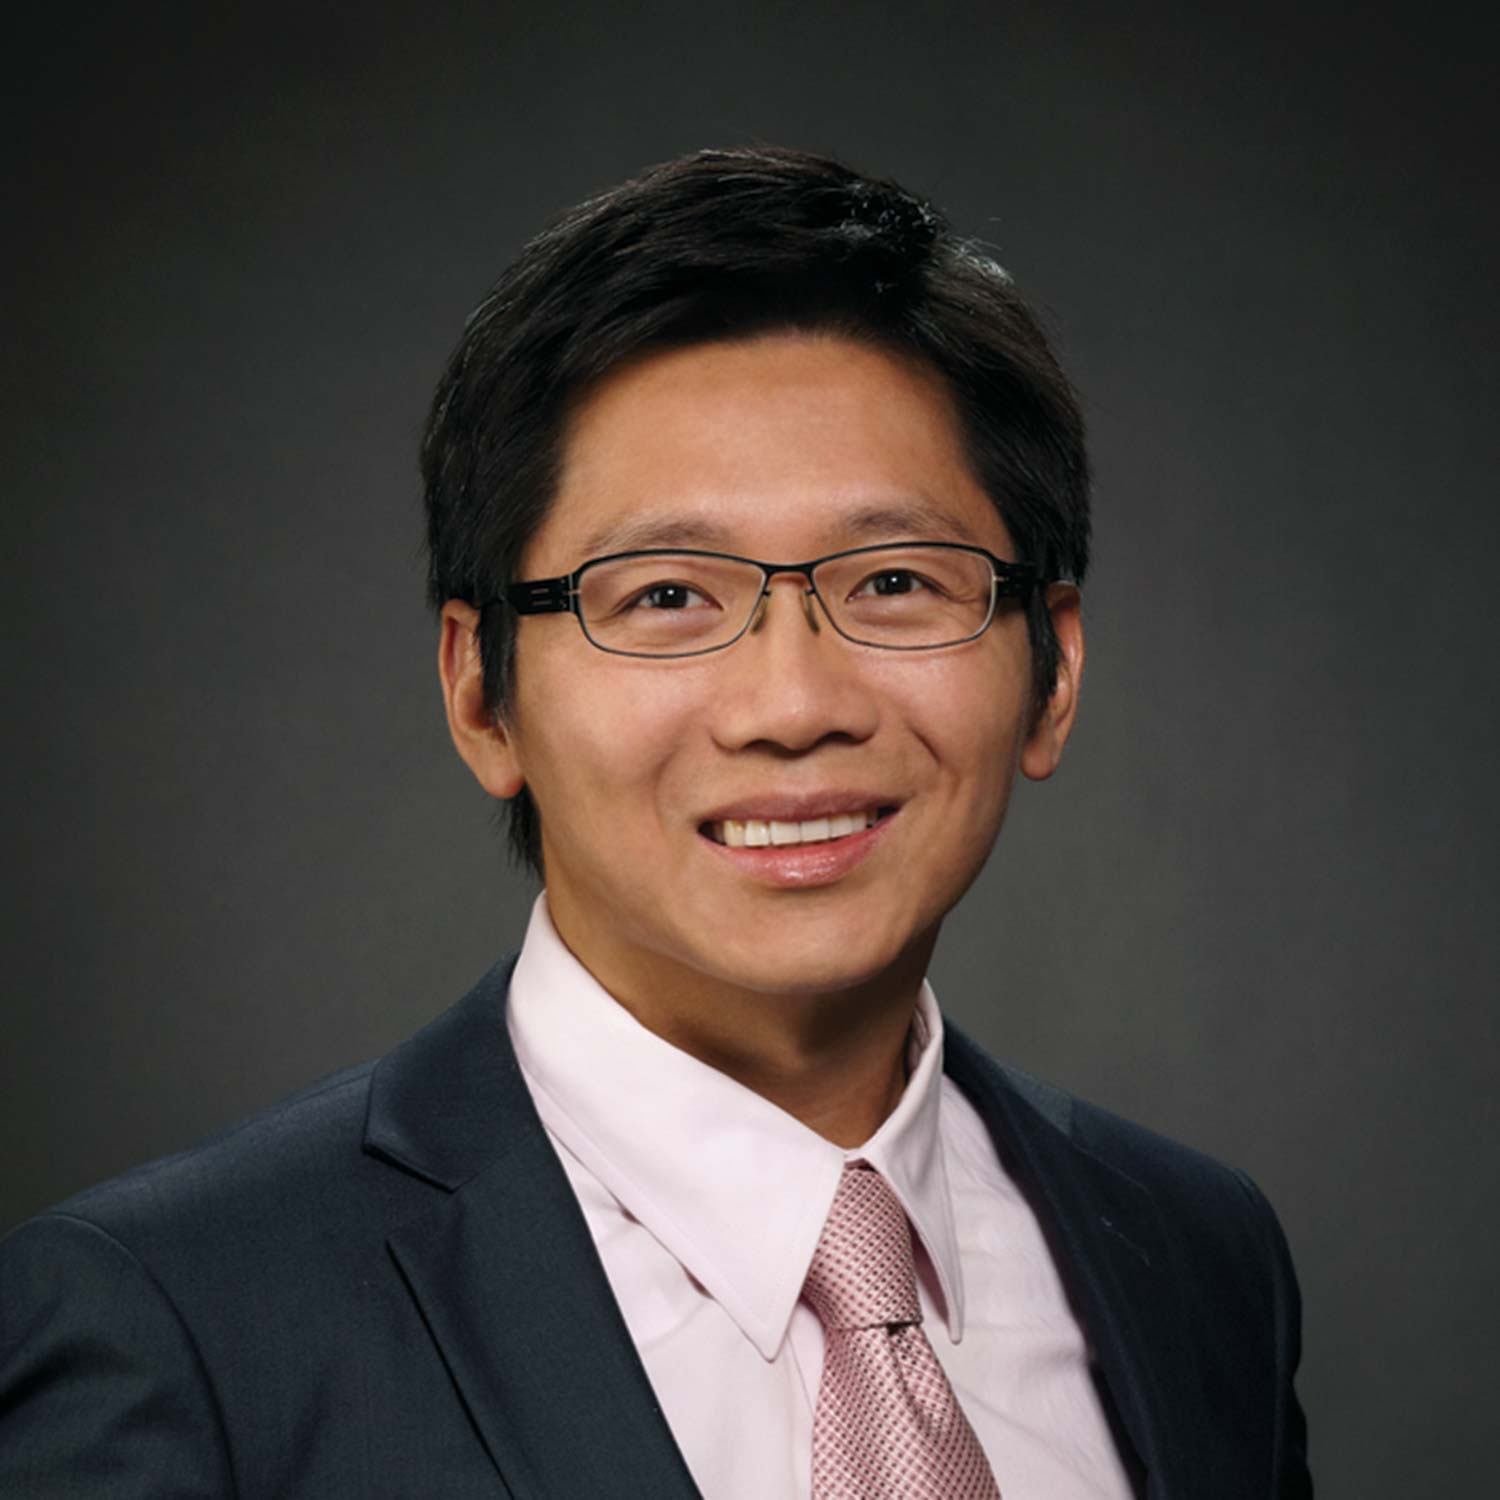 Jason Hsu, PhD